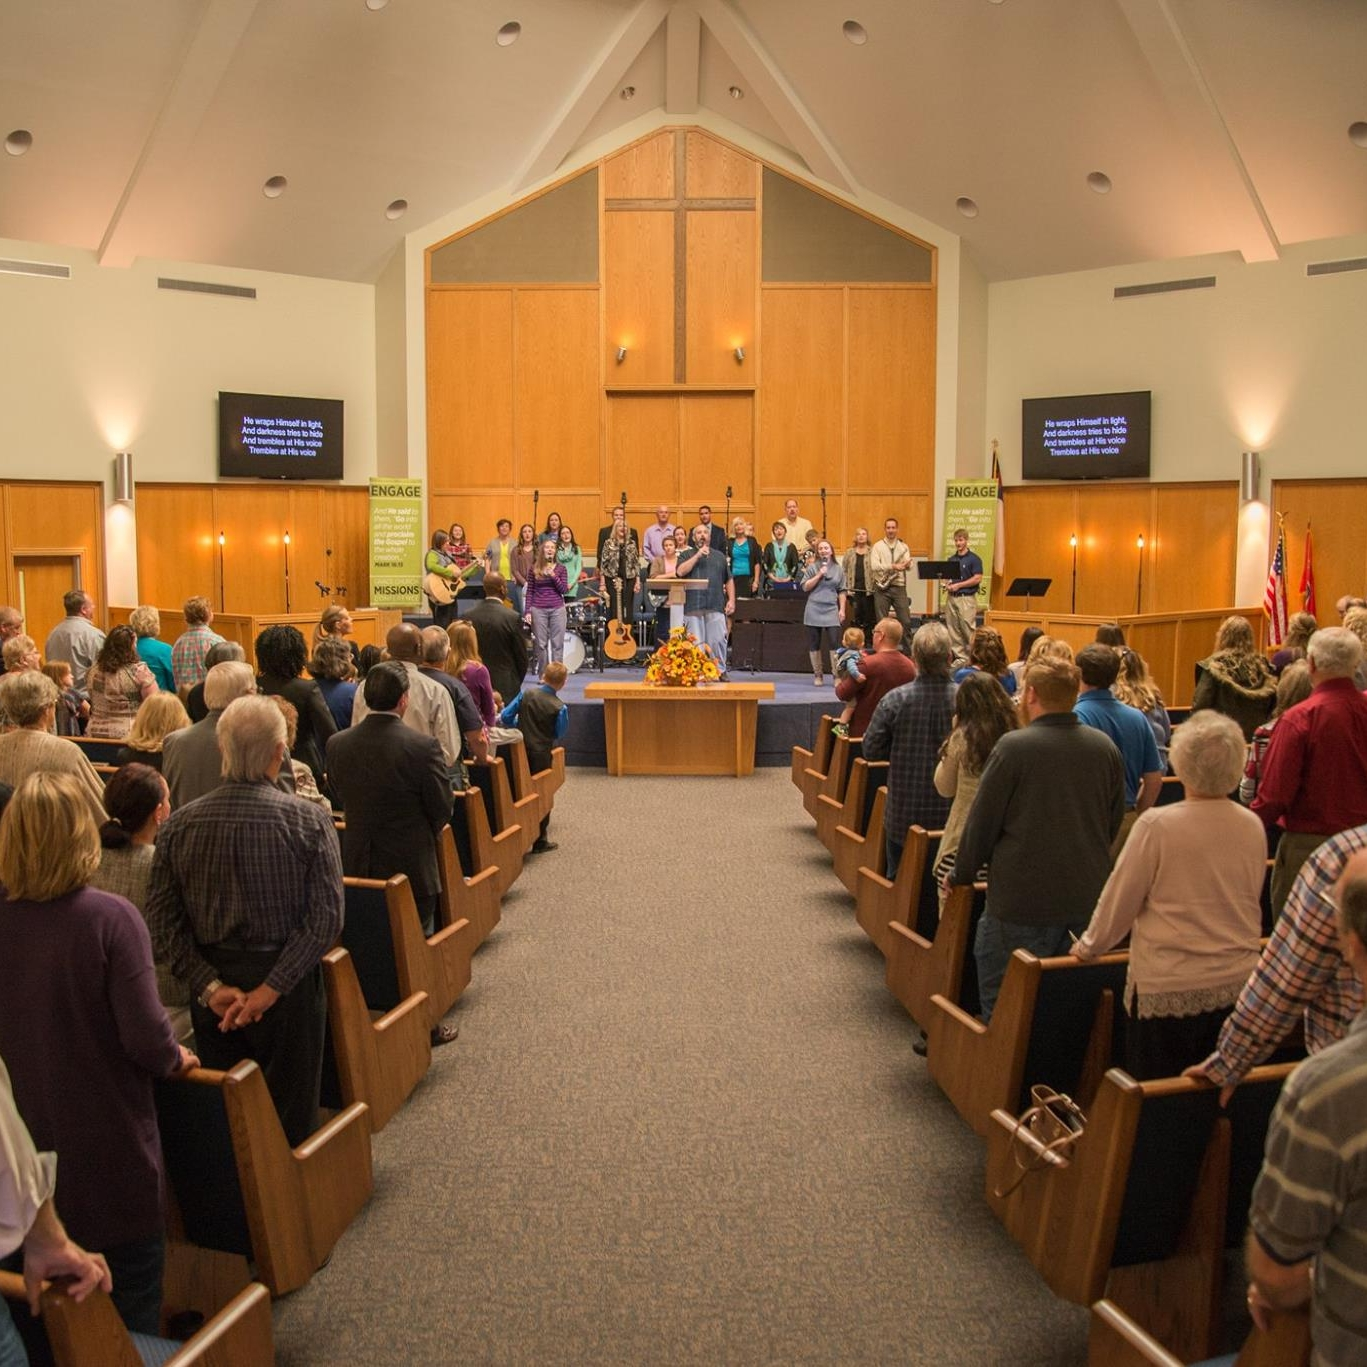 church pic drone view.jpg